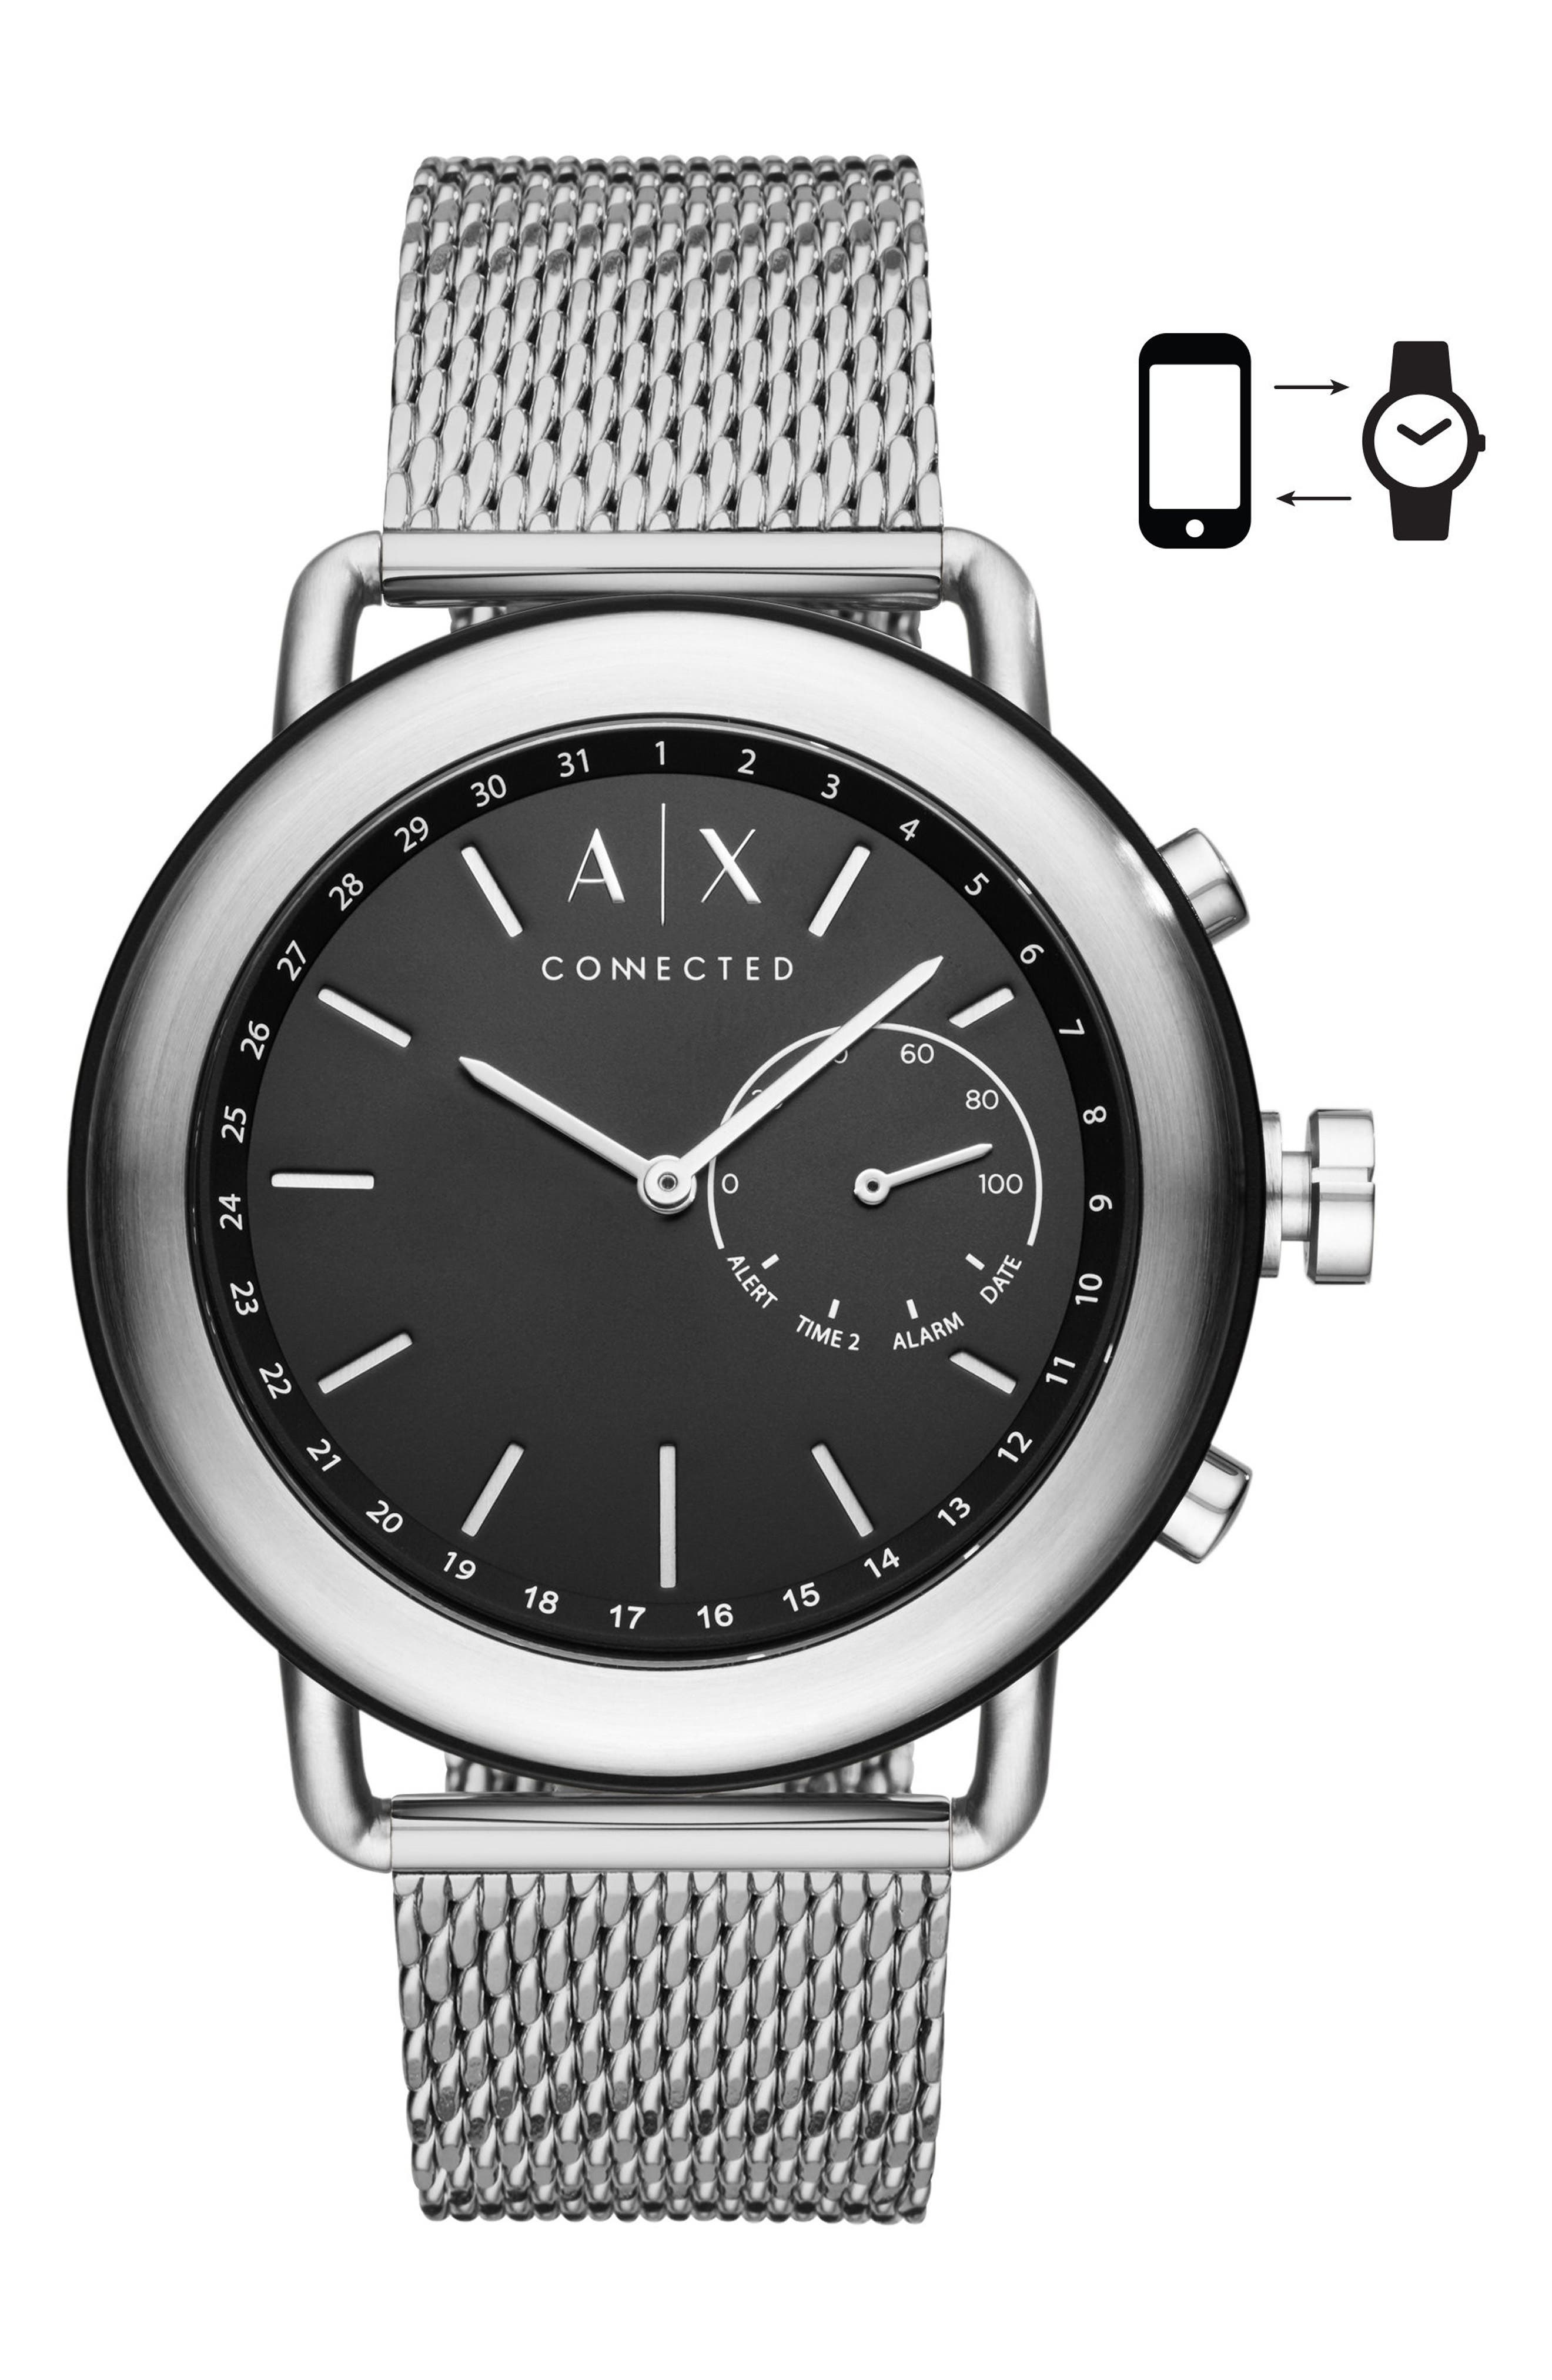 Main Image - AX Armani Exchange Connected Hybrid Mesh Strap Smart Watch, 47mm